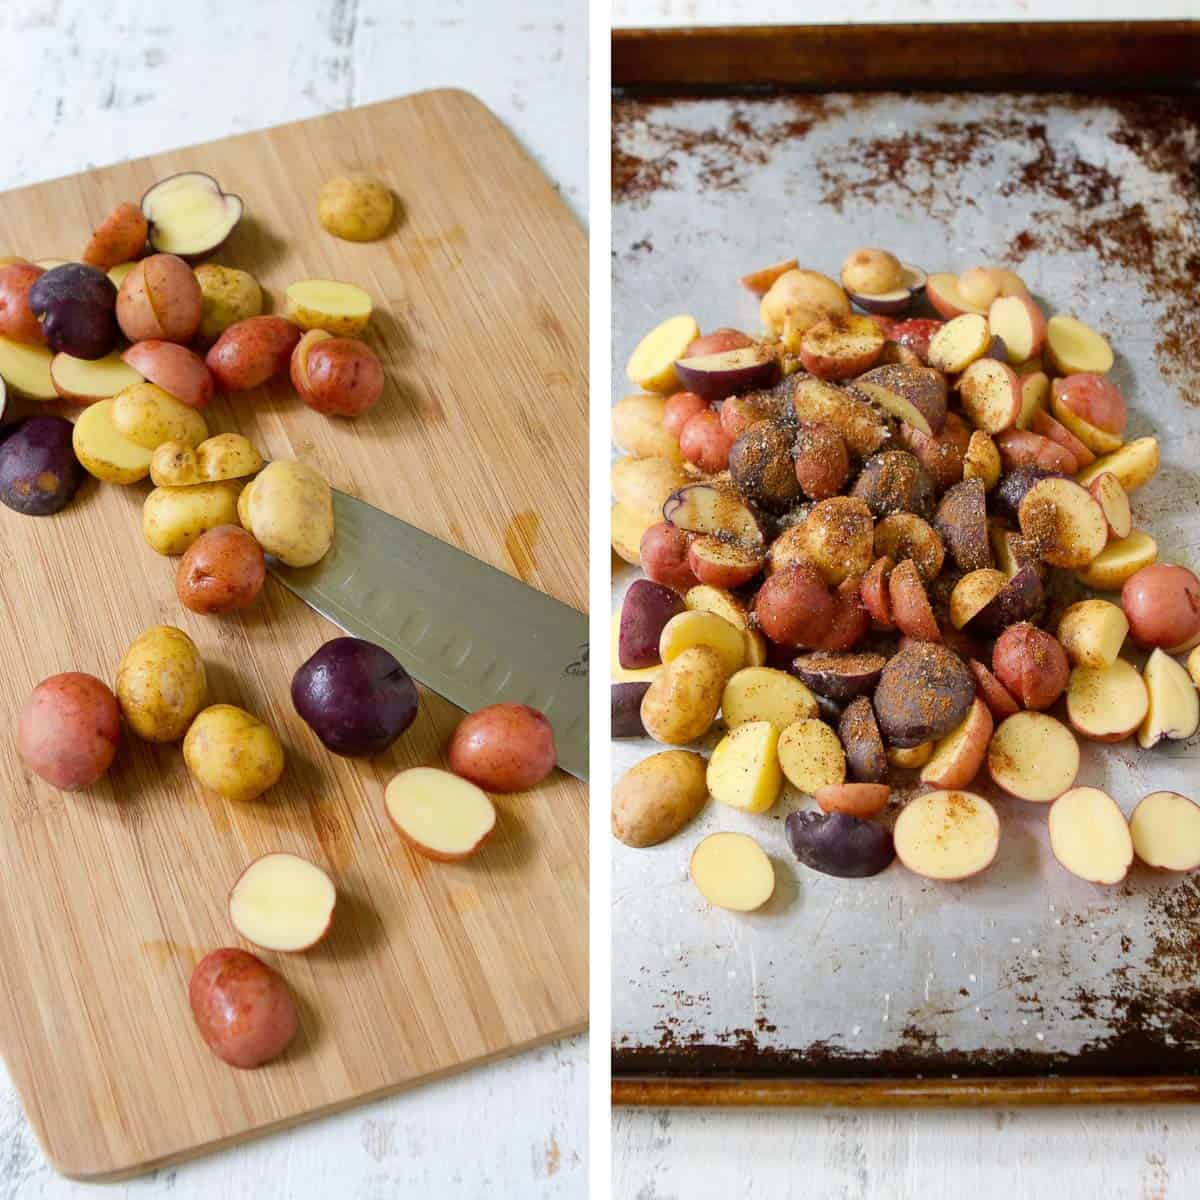 Slicing potatoes on a cutting board and pile of potatoes on a baking sheet.